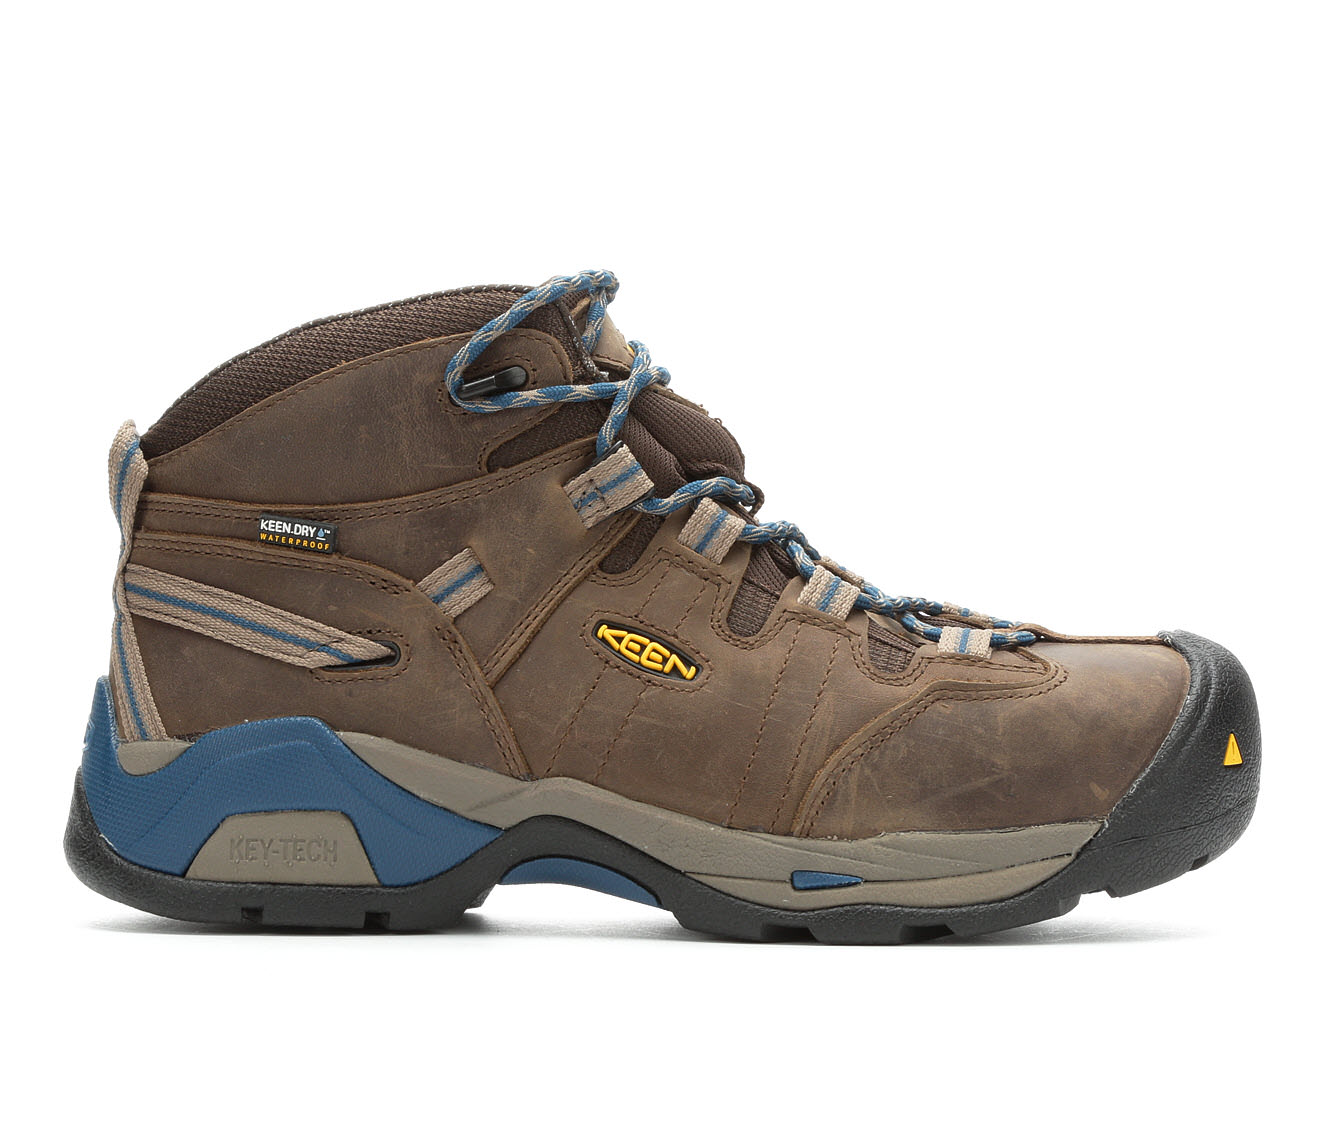 KEEN Utility Detroit XT Mid Steel Toe Waterproof Men's Boots (Brown Leather)